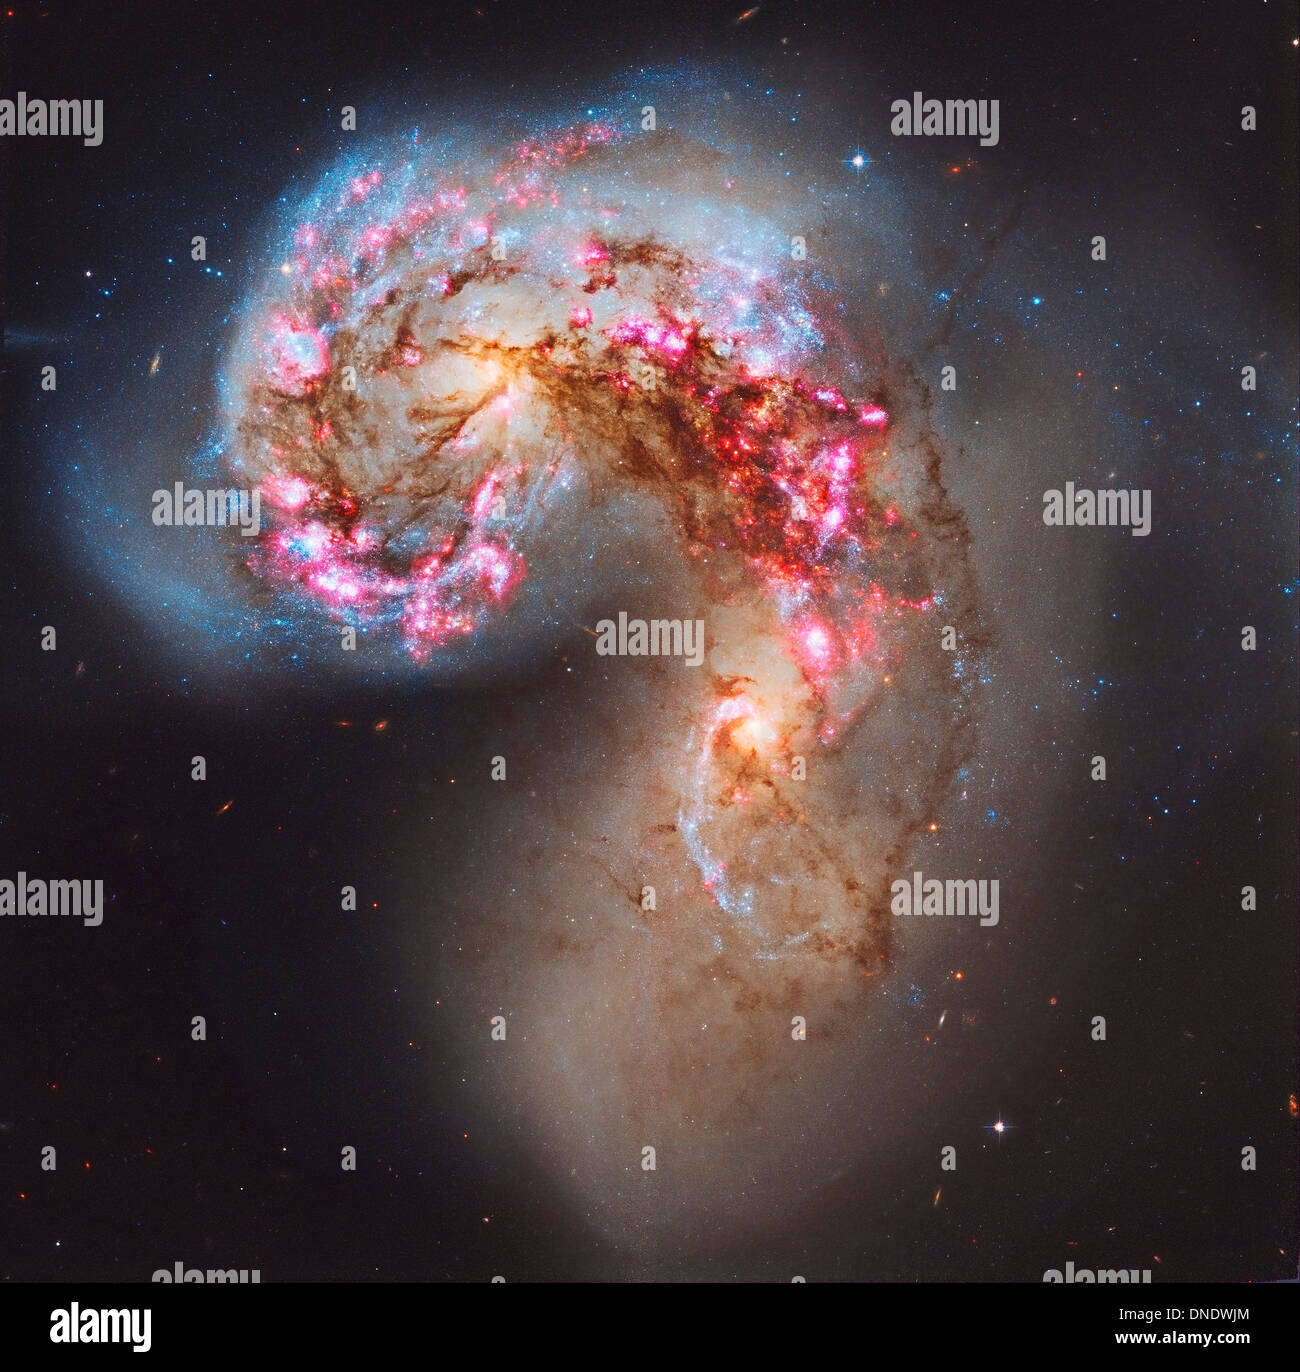 The Antennae galaxies, also known as NGC 4038/NGC 4039, are a pair of interacting galaxies in the constellation Corvus. - Stock Image